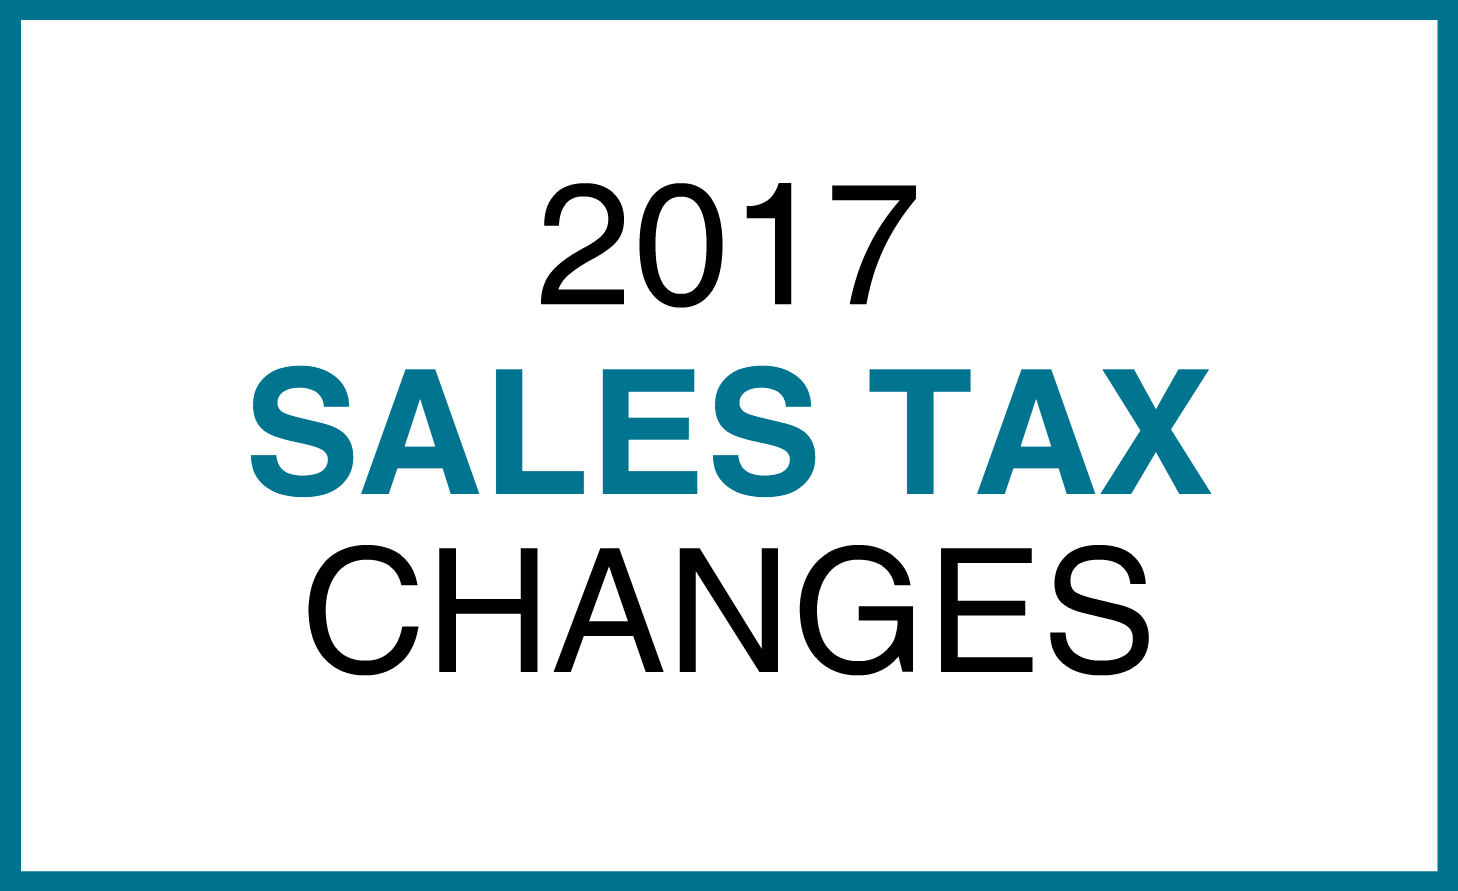 2017 sales tax changes.png